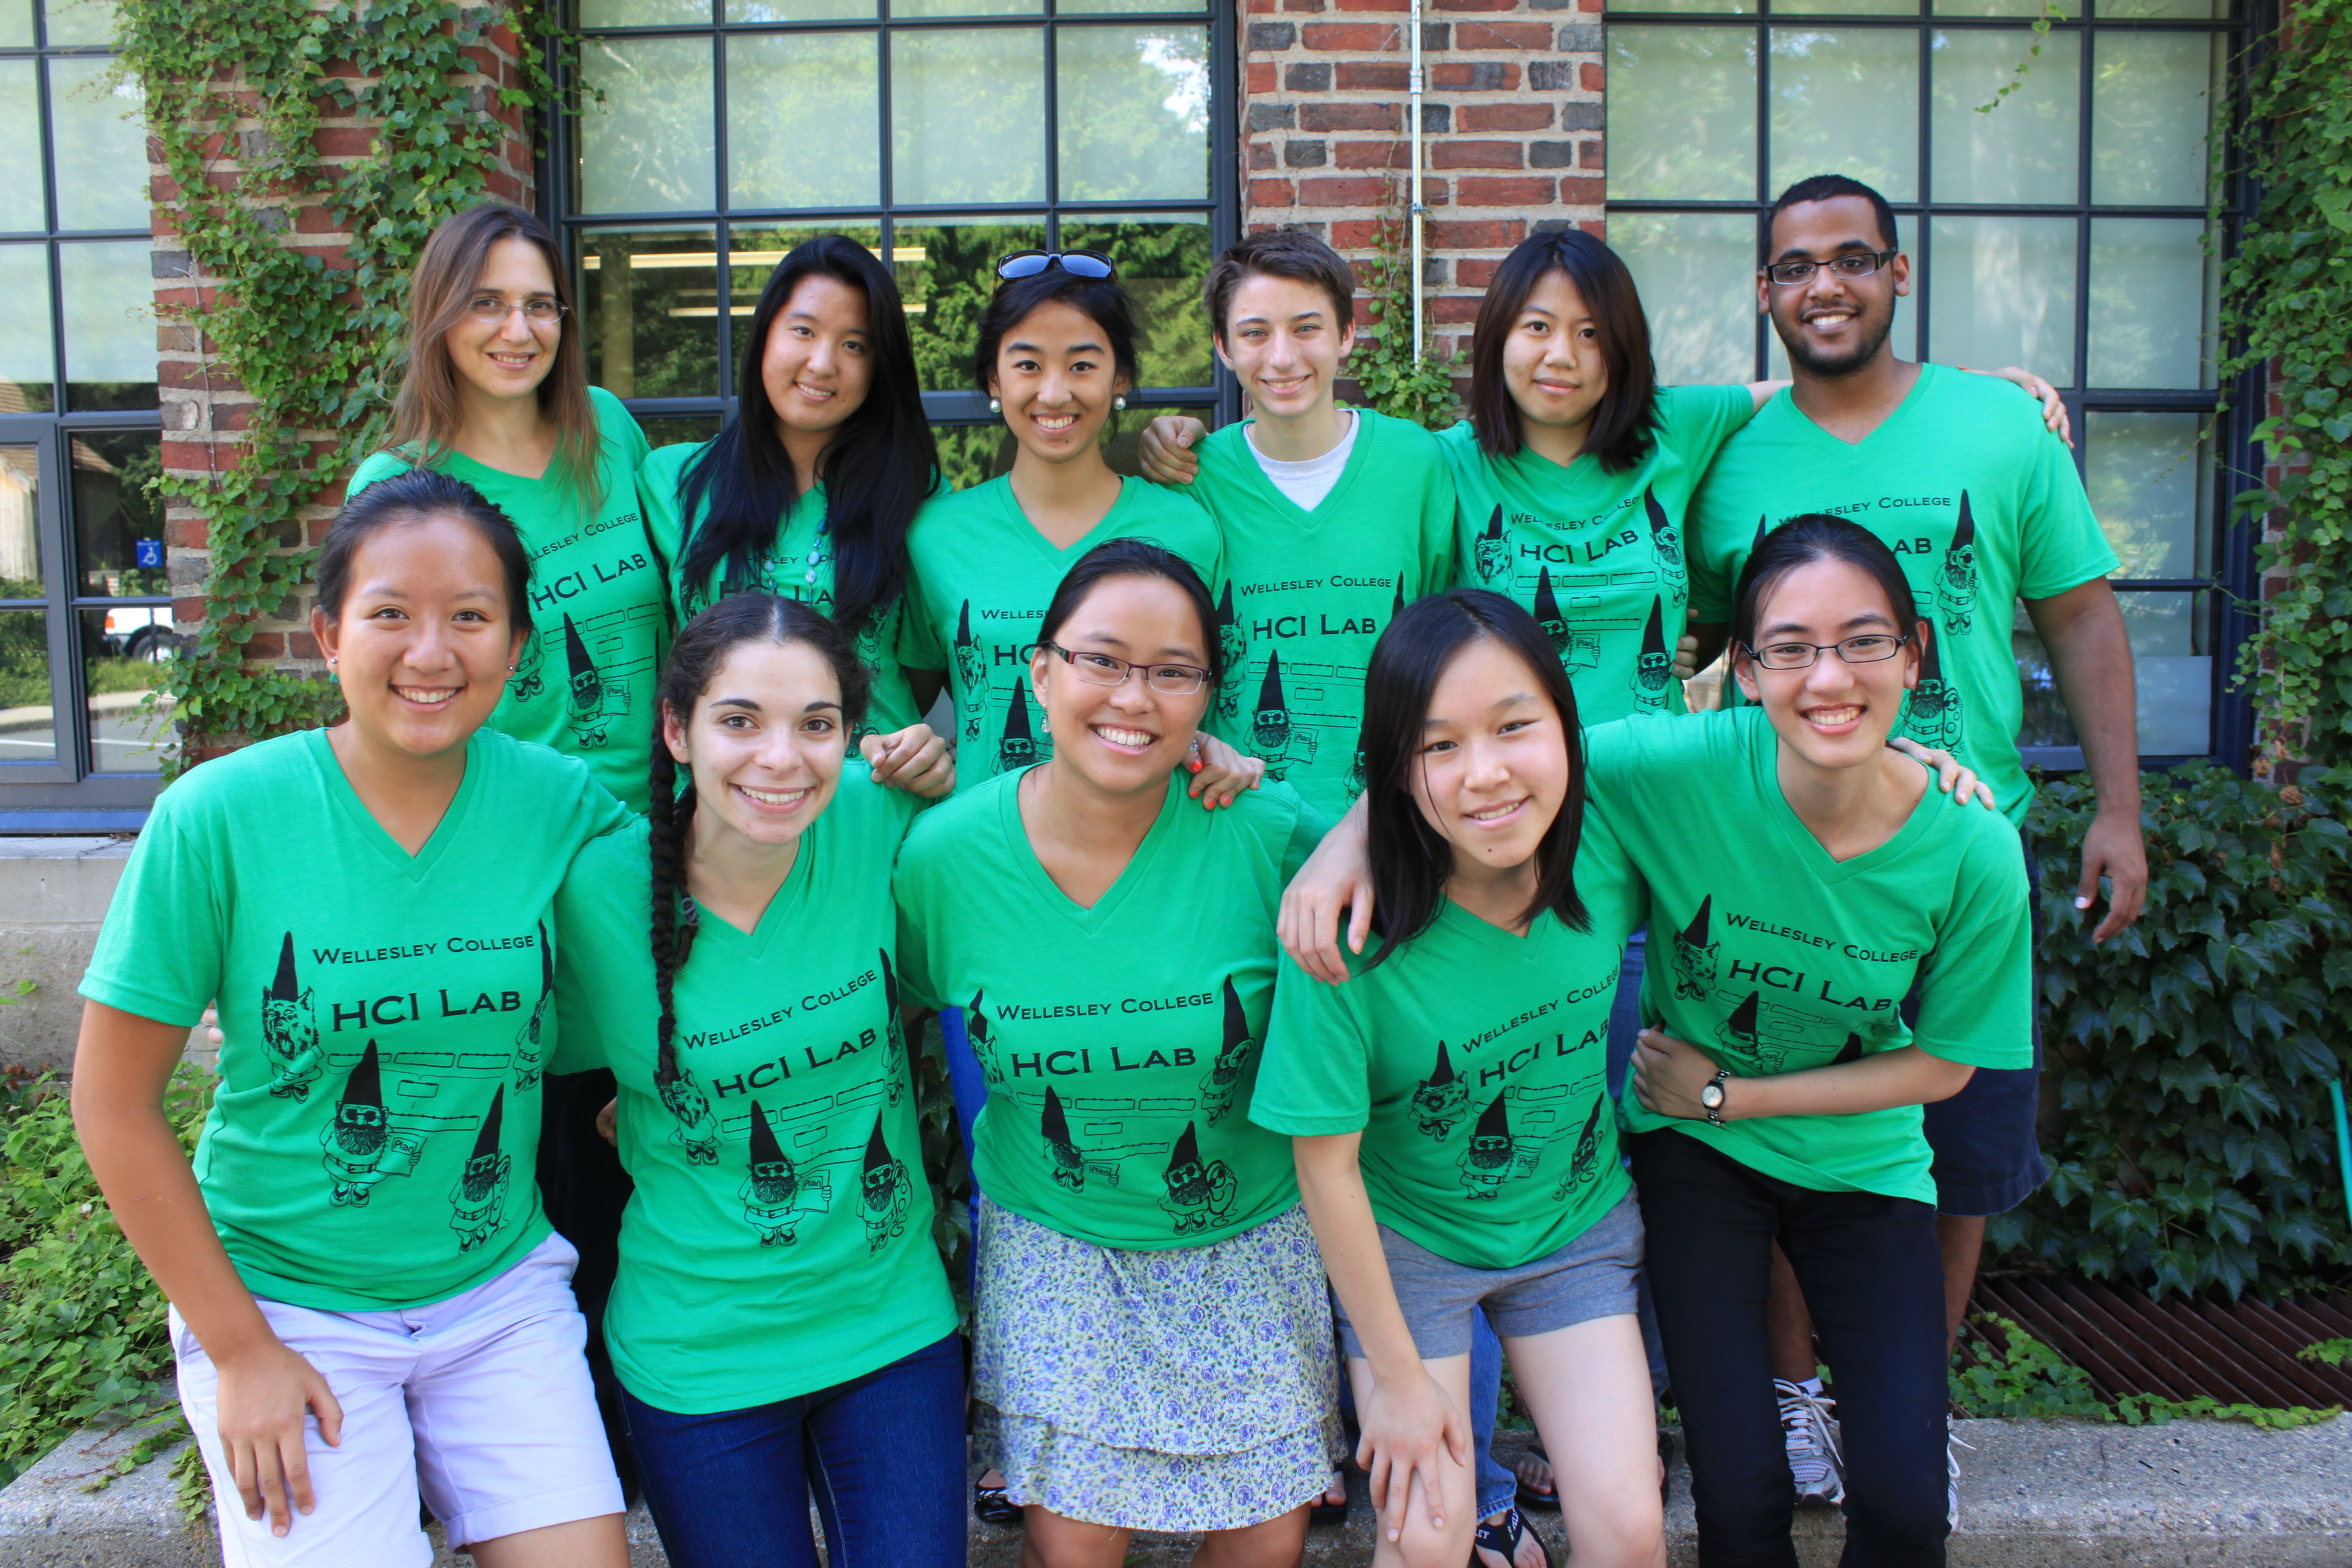 Shirt design lab - Wellesley College Hci Research Lab Gnomes T Shirt Photo